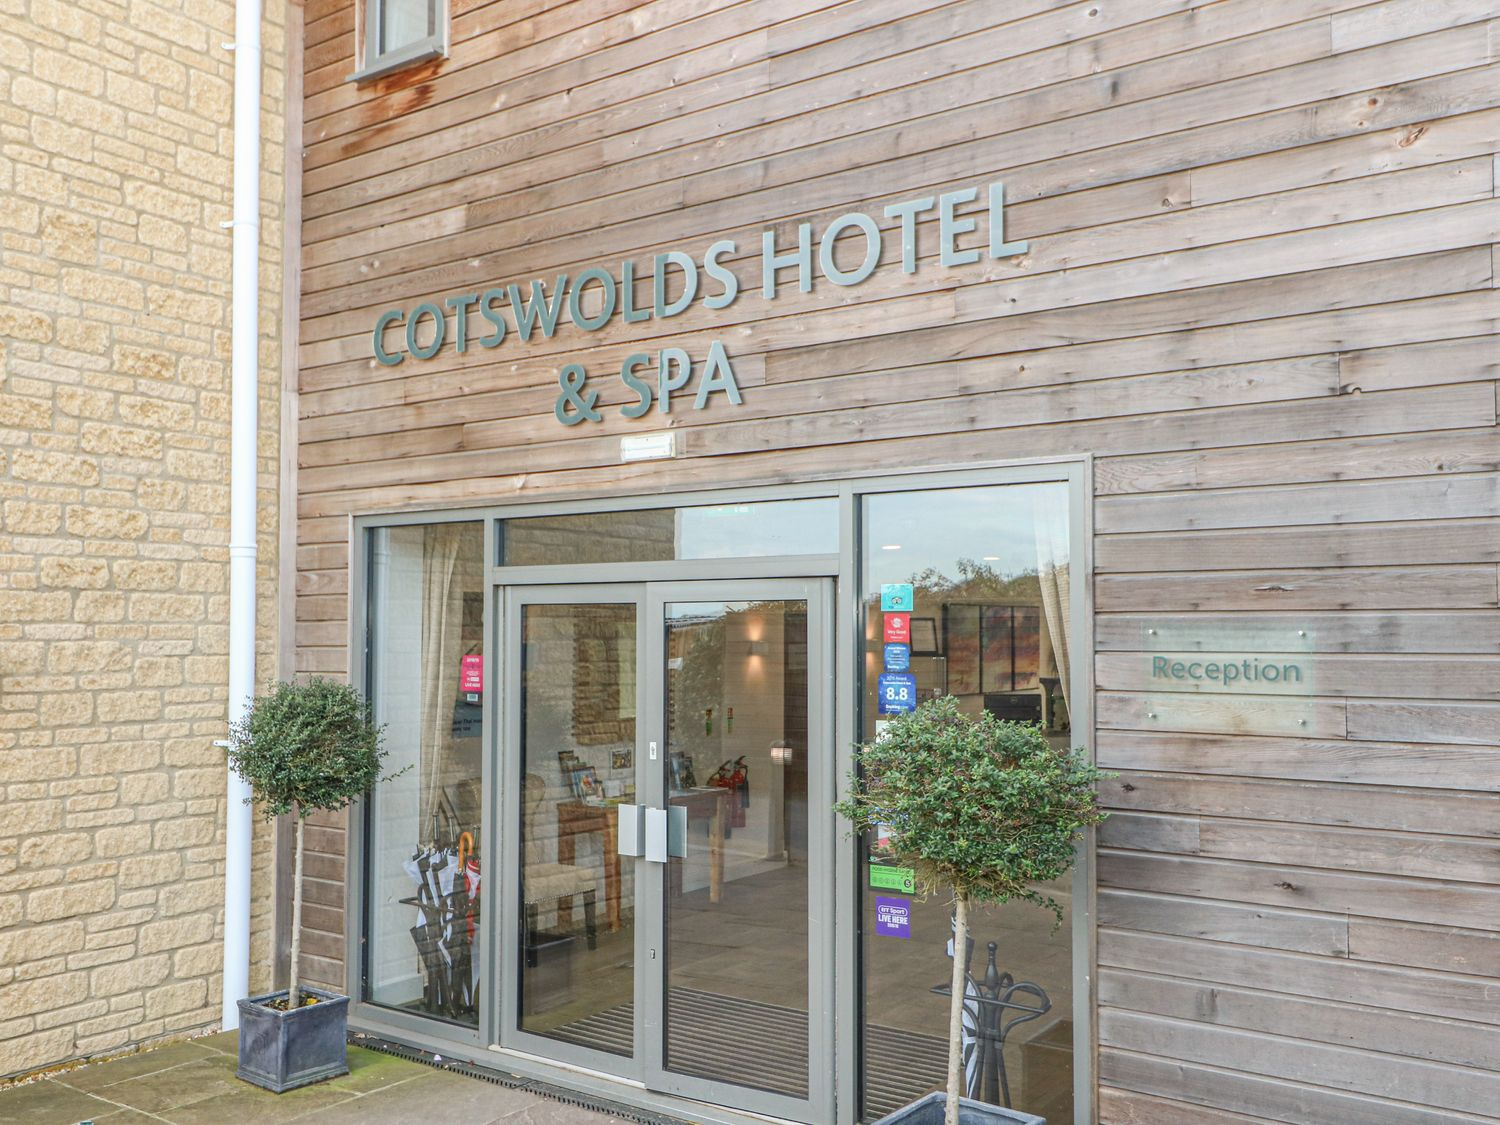 Cotswold Club 4 Bedroom Apartment - Cotswolds - 1034436 - photo 1